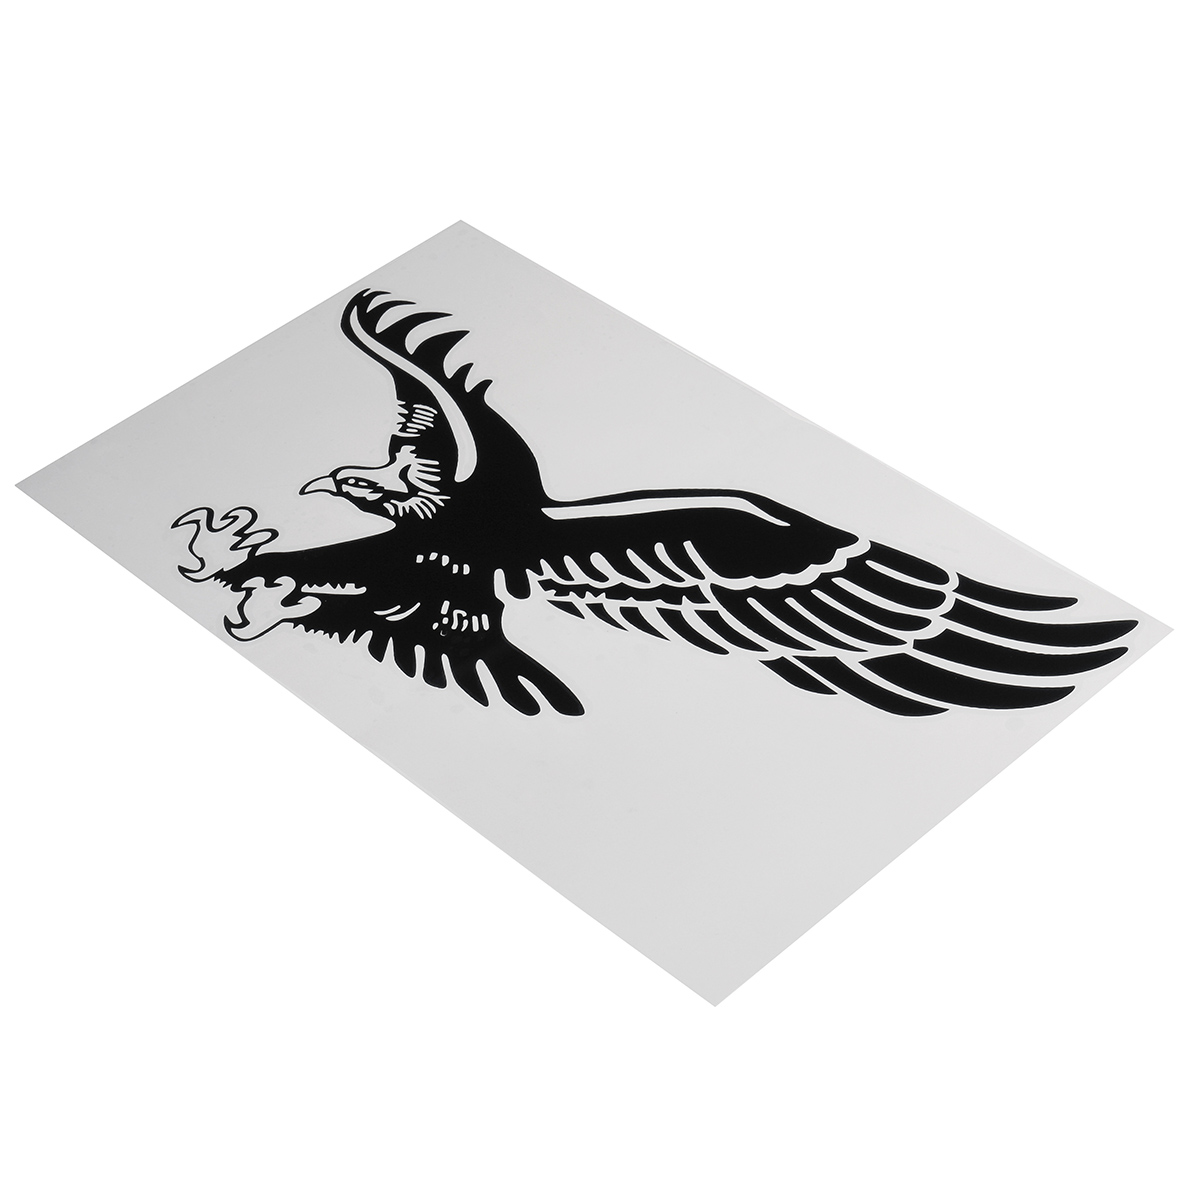 Car Auto Eagle Reflective Decal Vinyl Stickers Door Hood Cover Sticker Exterior